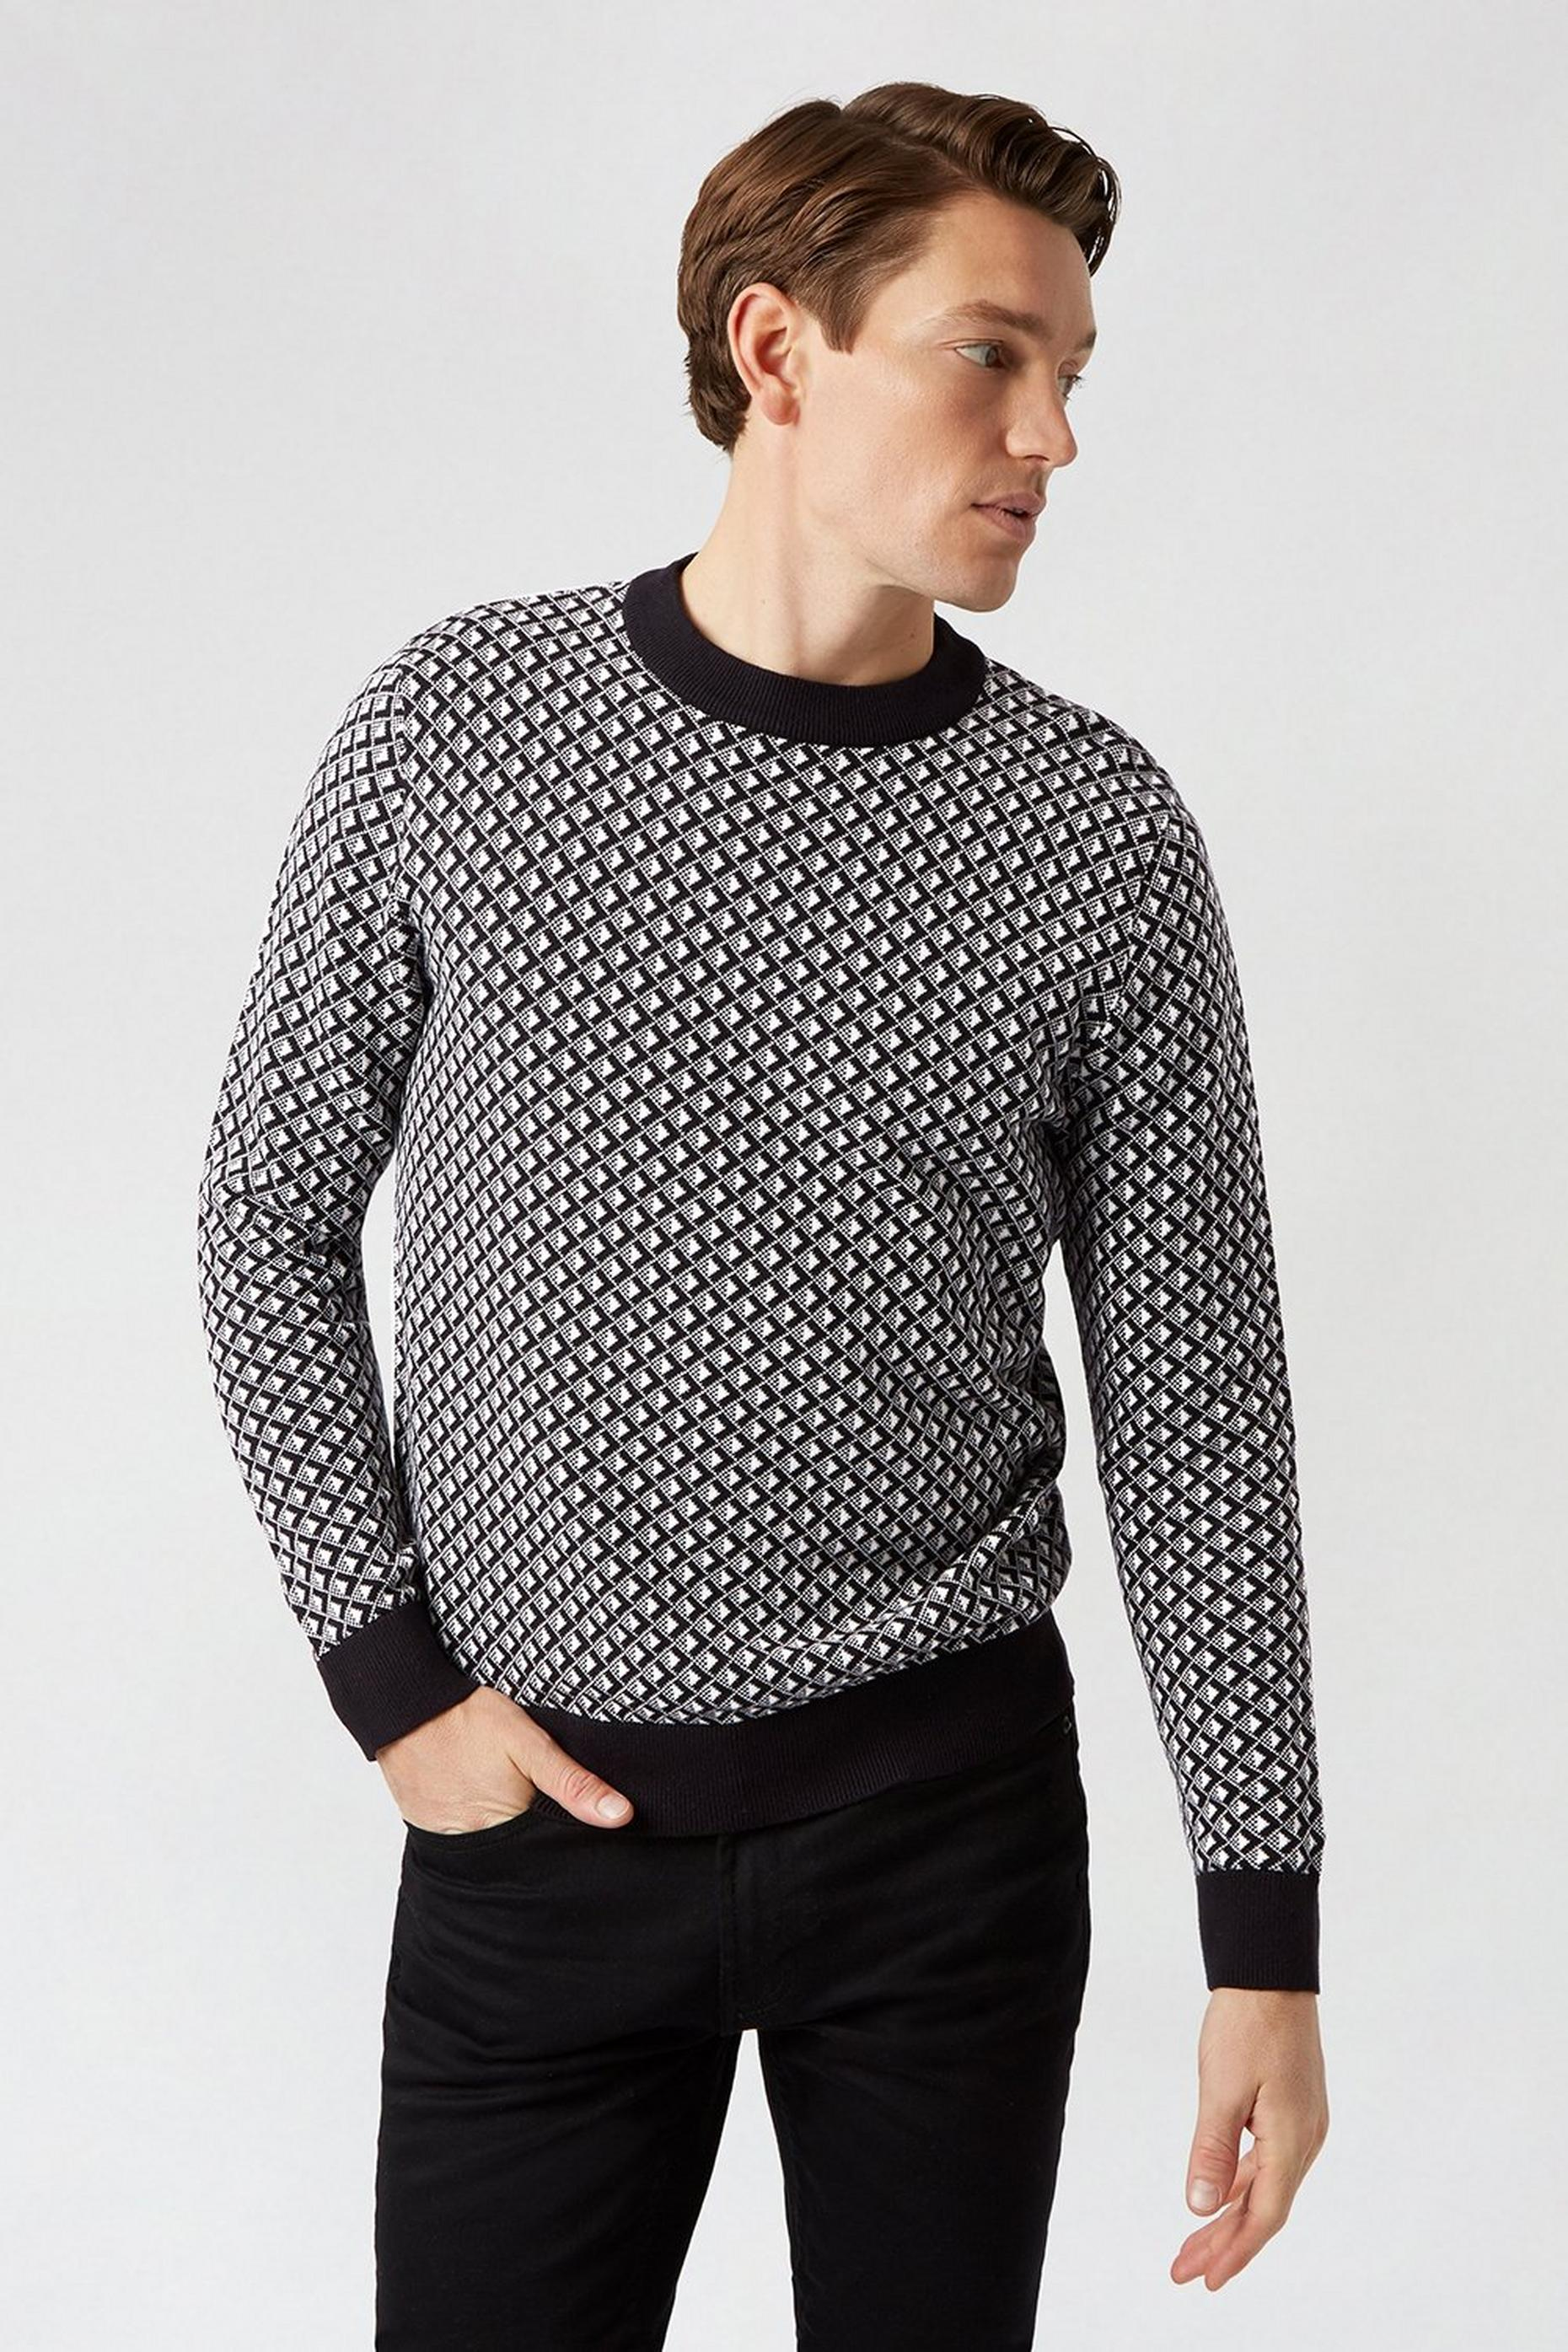 Black And White Geometric Pattern Jumper